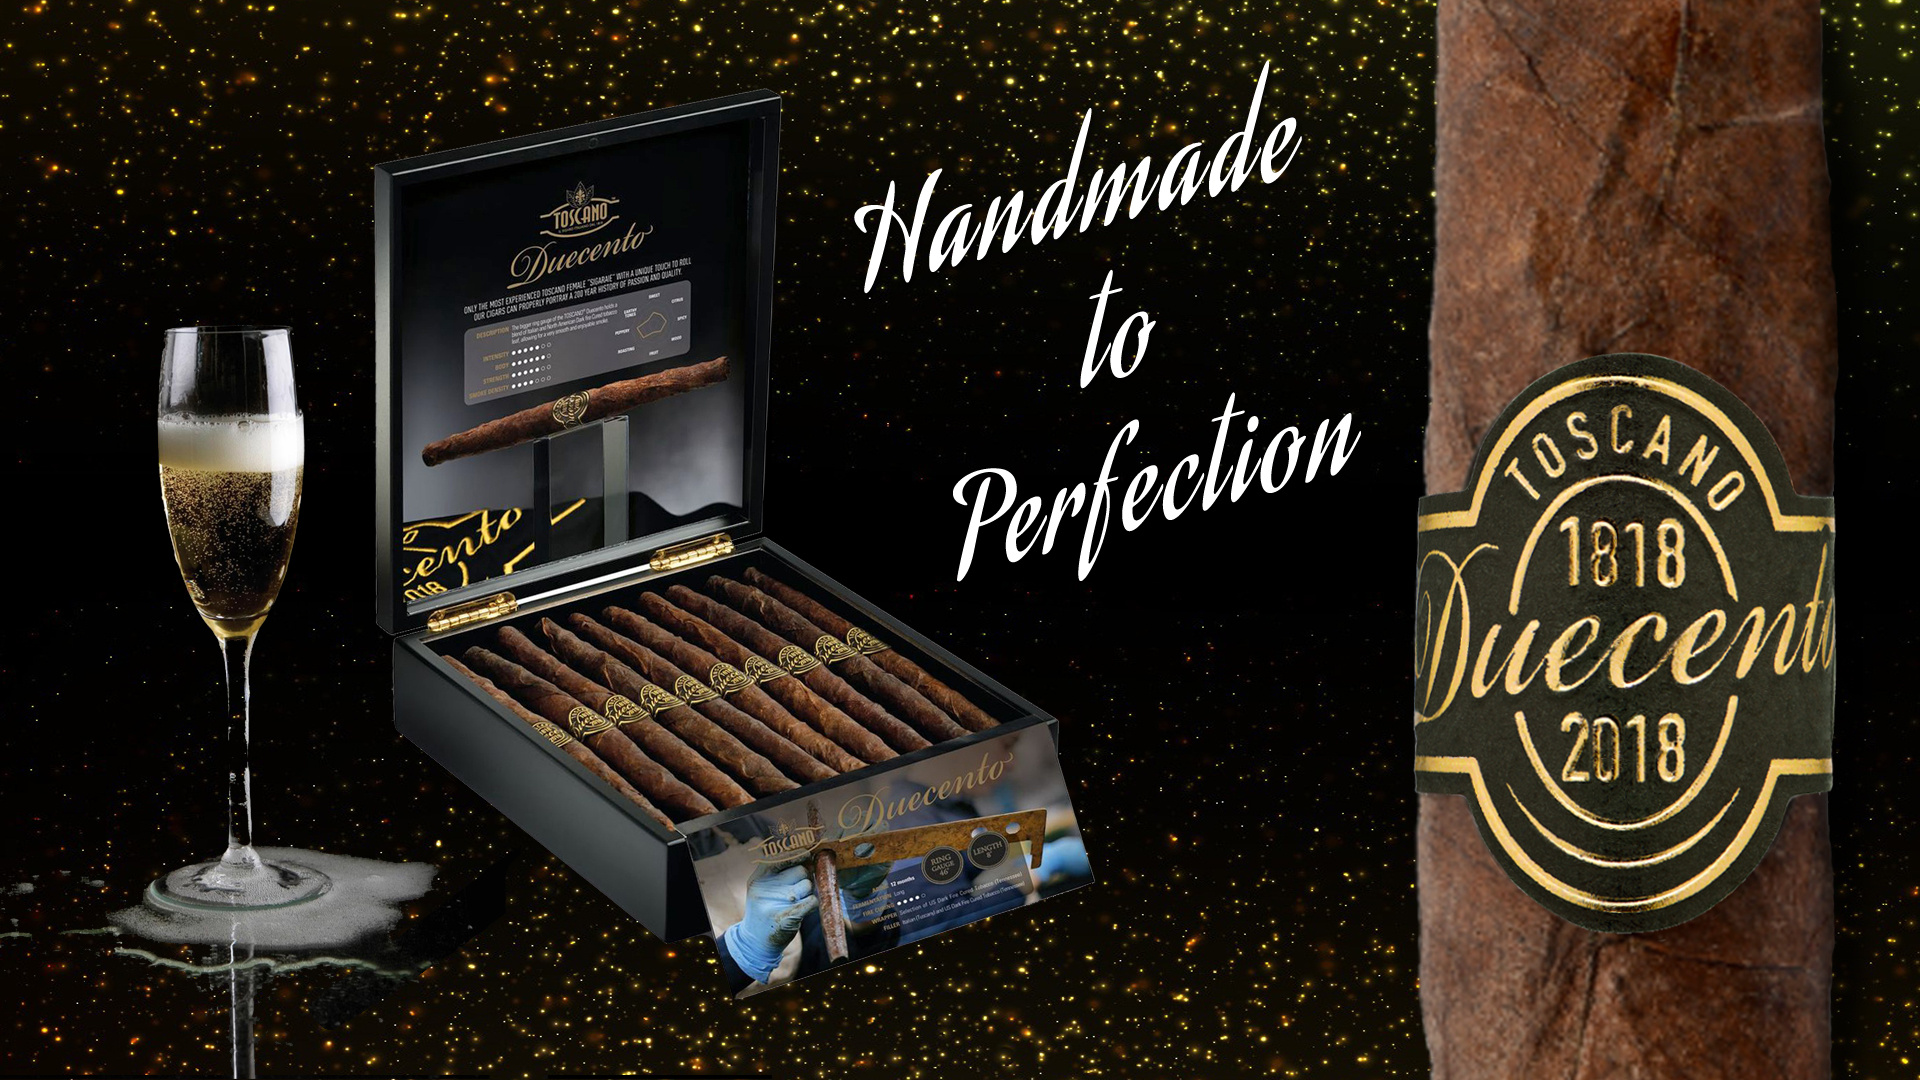 Toscano 200: Handmade to Perfection